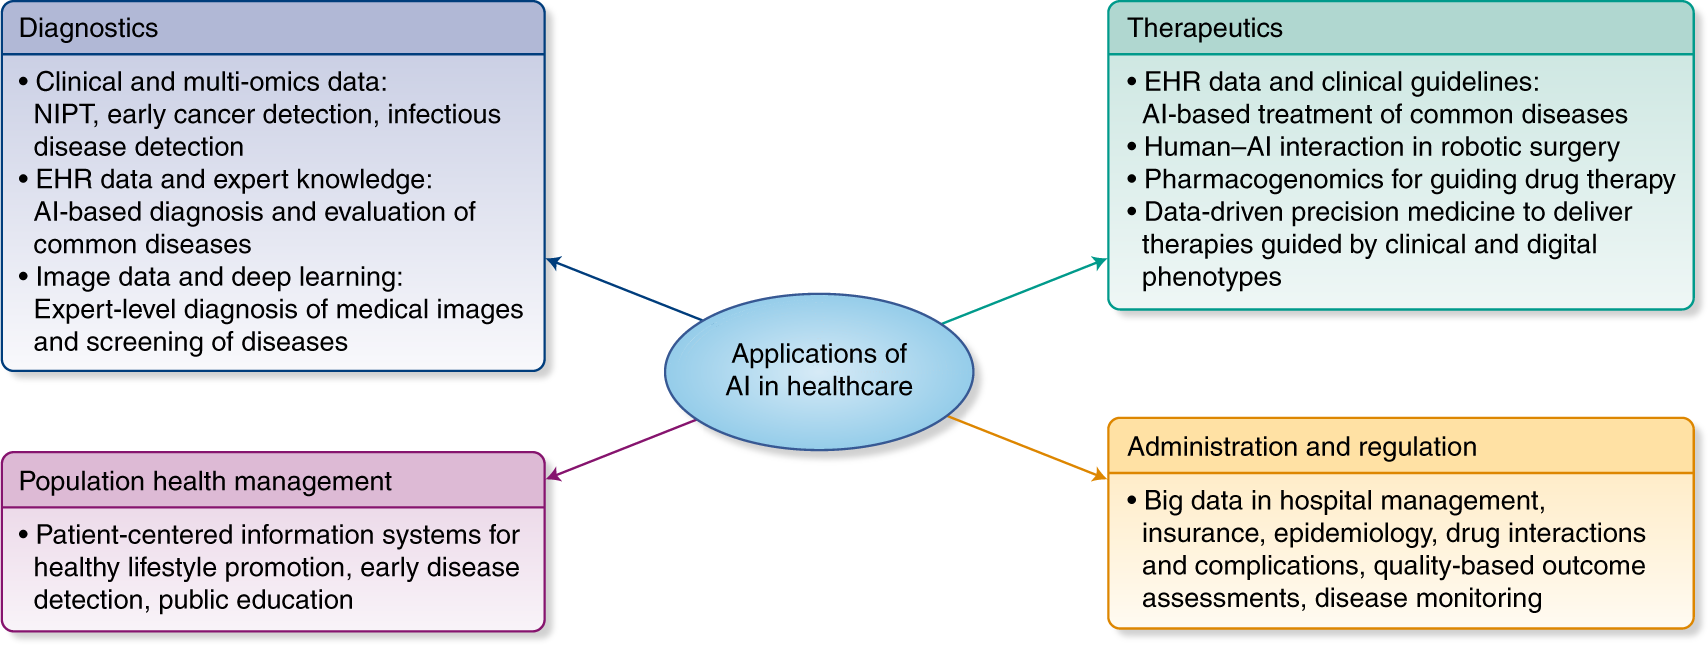 The practical implementation of artificial intelligence